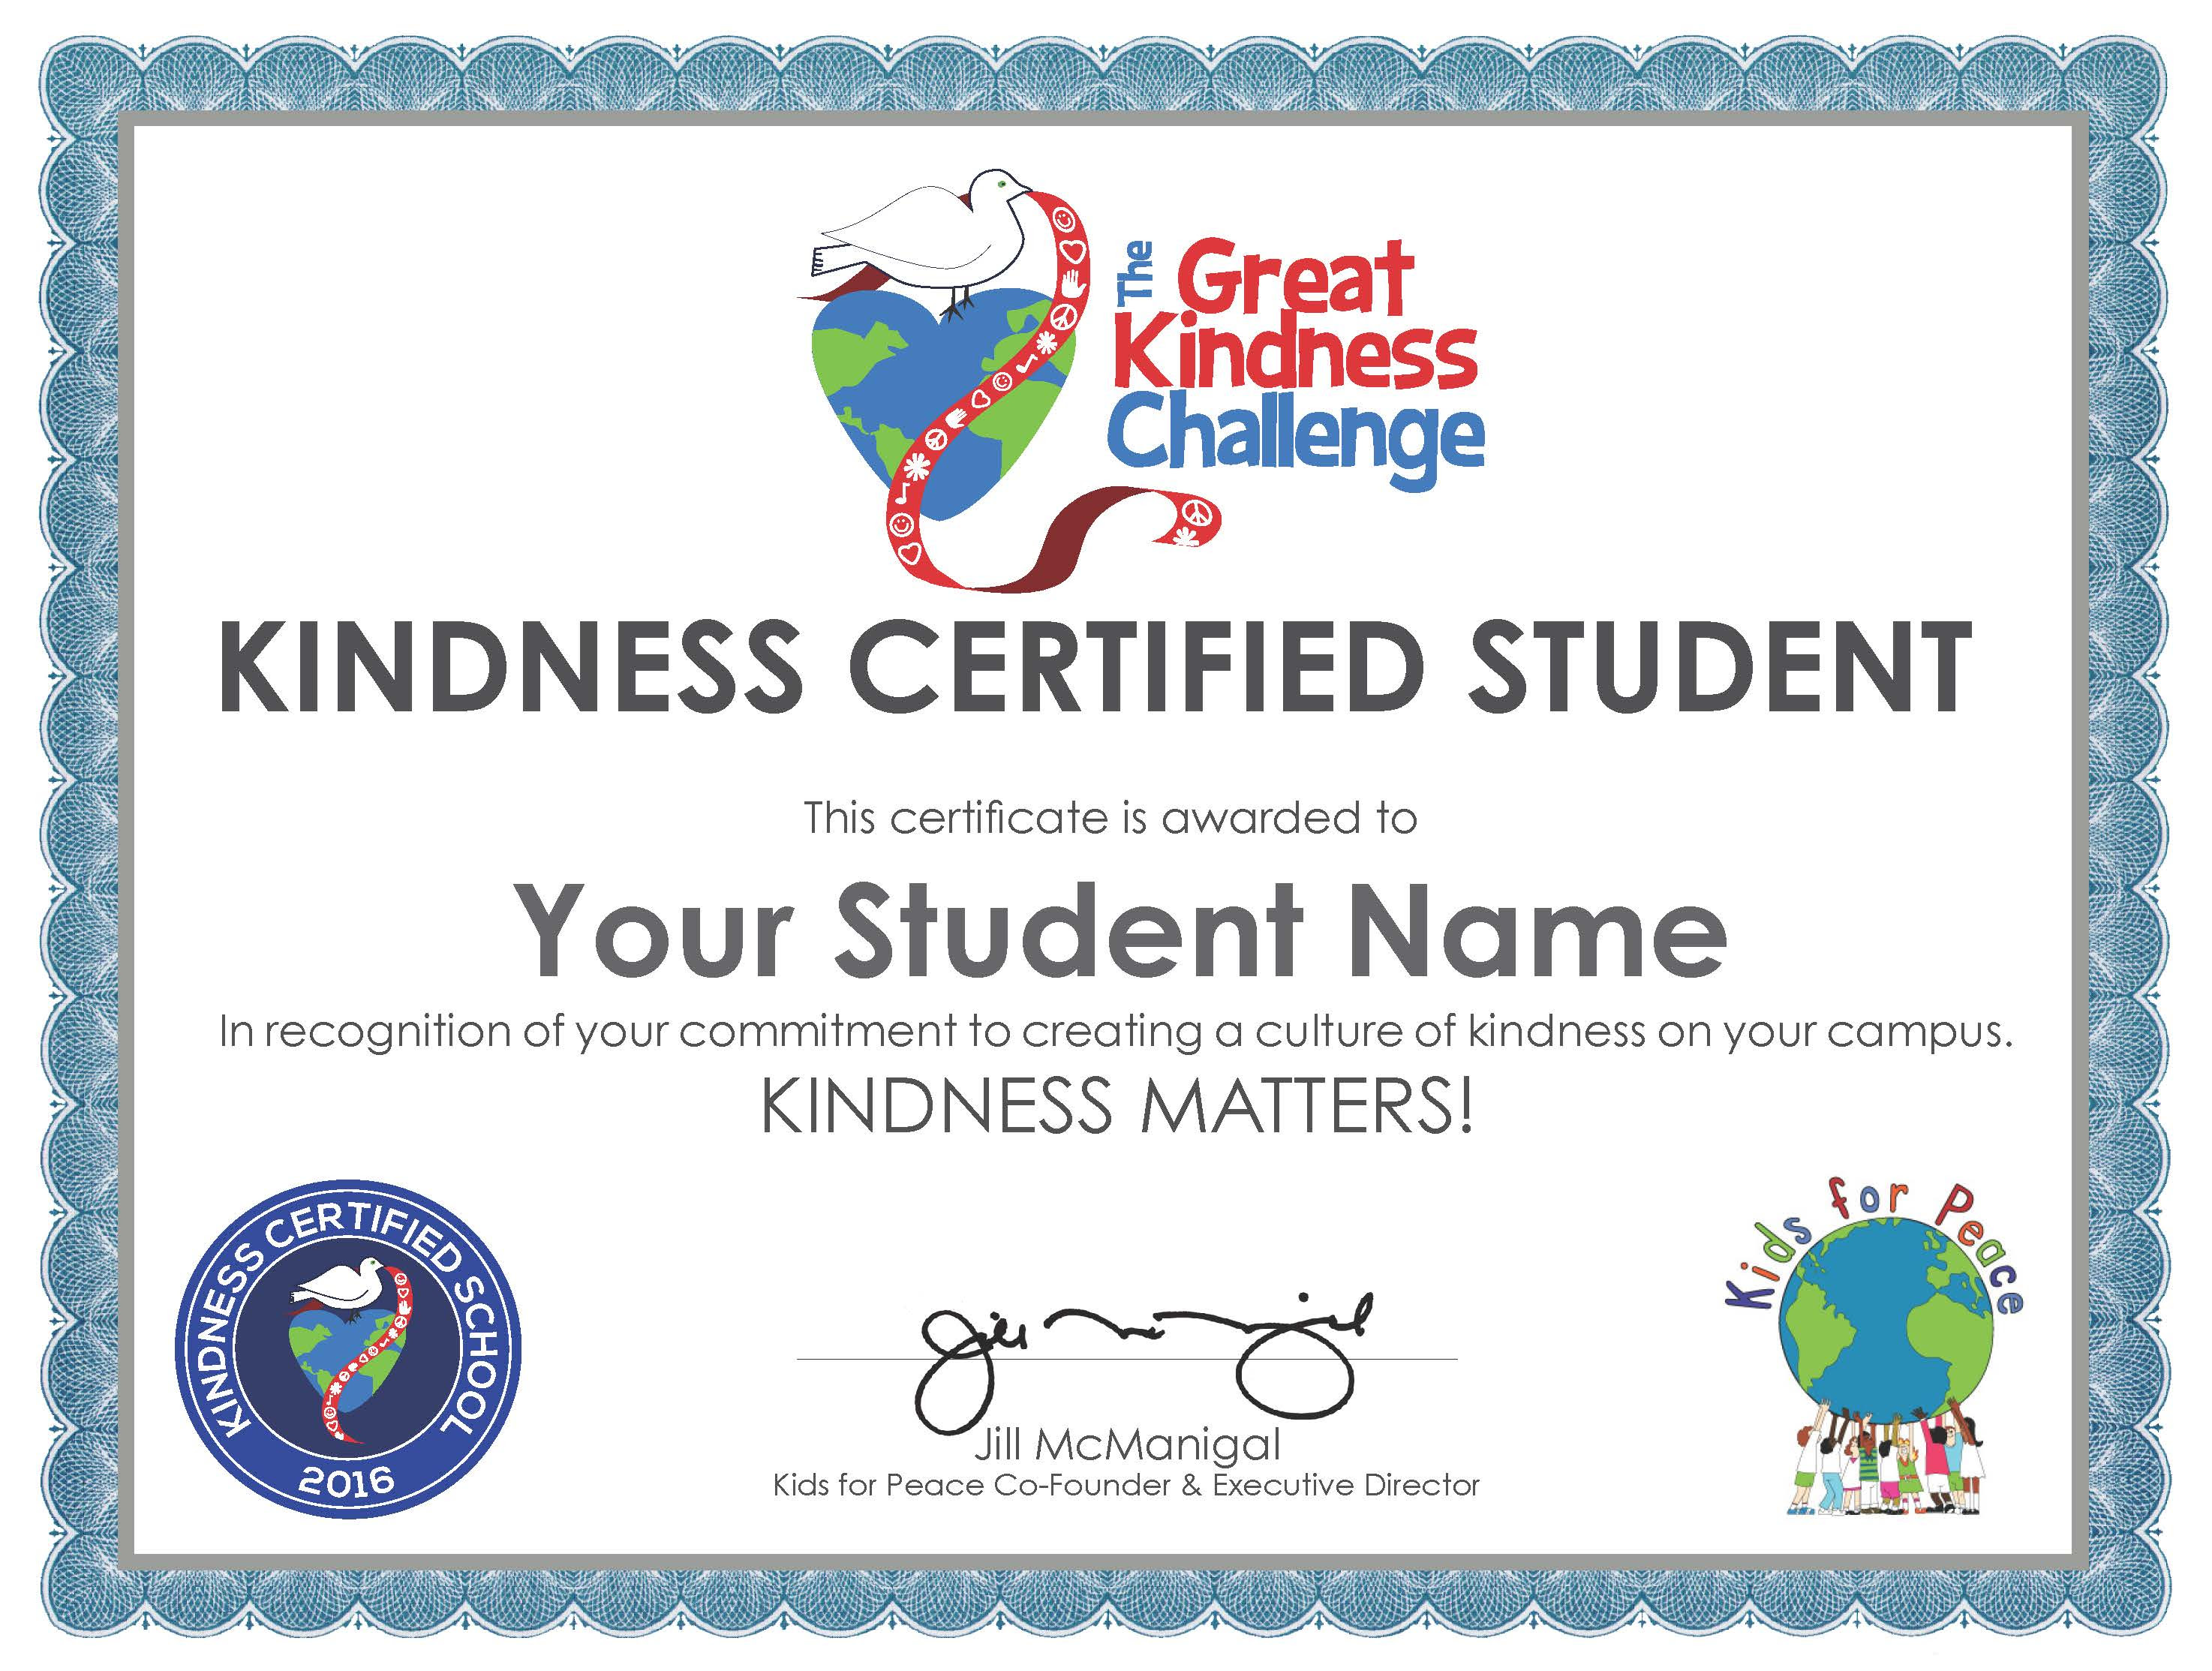 Student Certify image